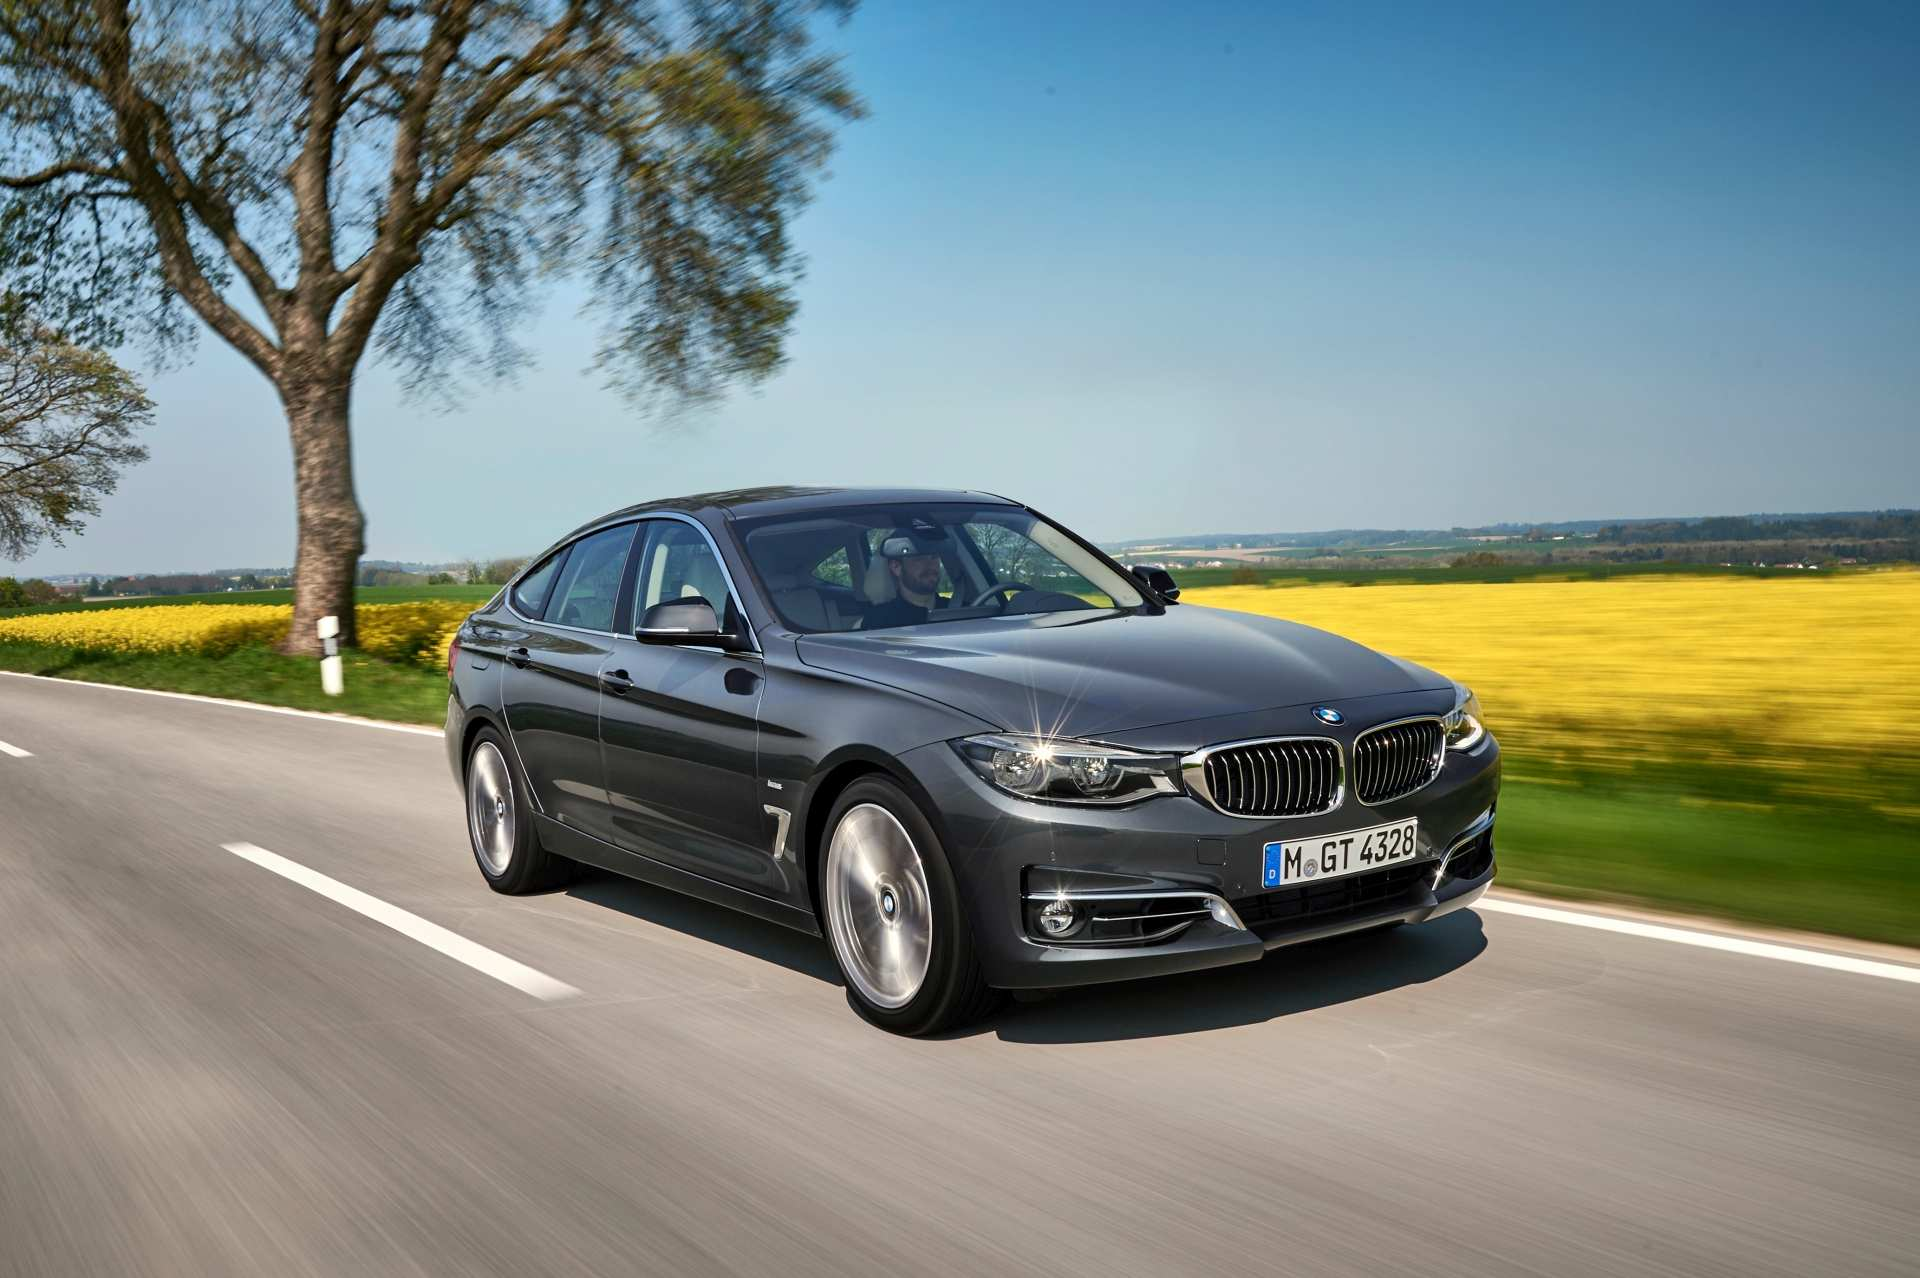 54 New Bmw 3 Gt 2020 Exterior and Interior by Bmw 3 Gt 2020